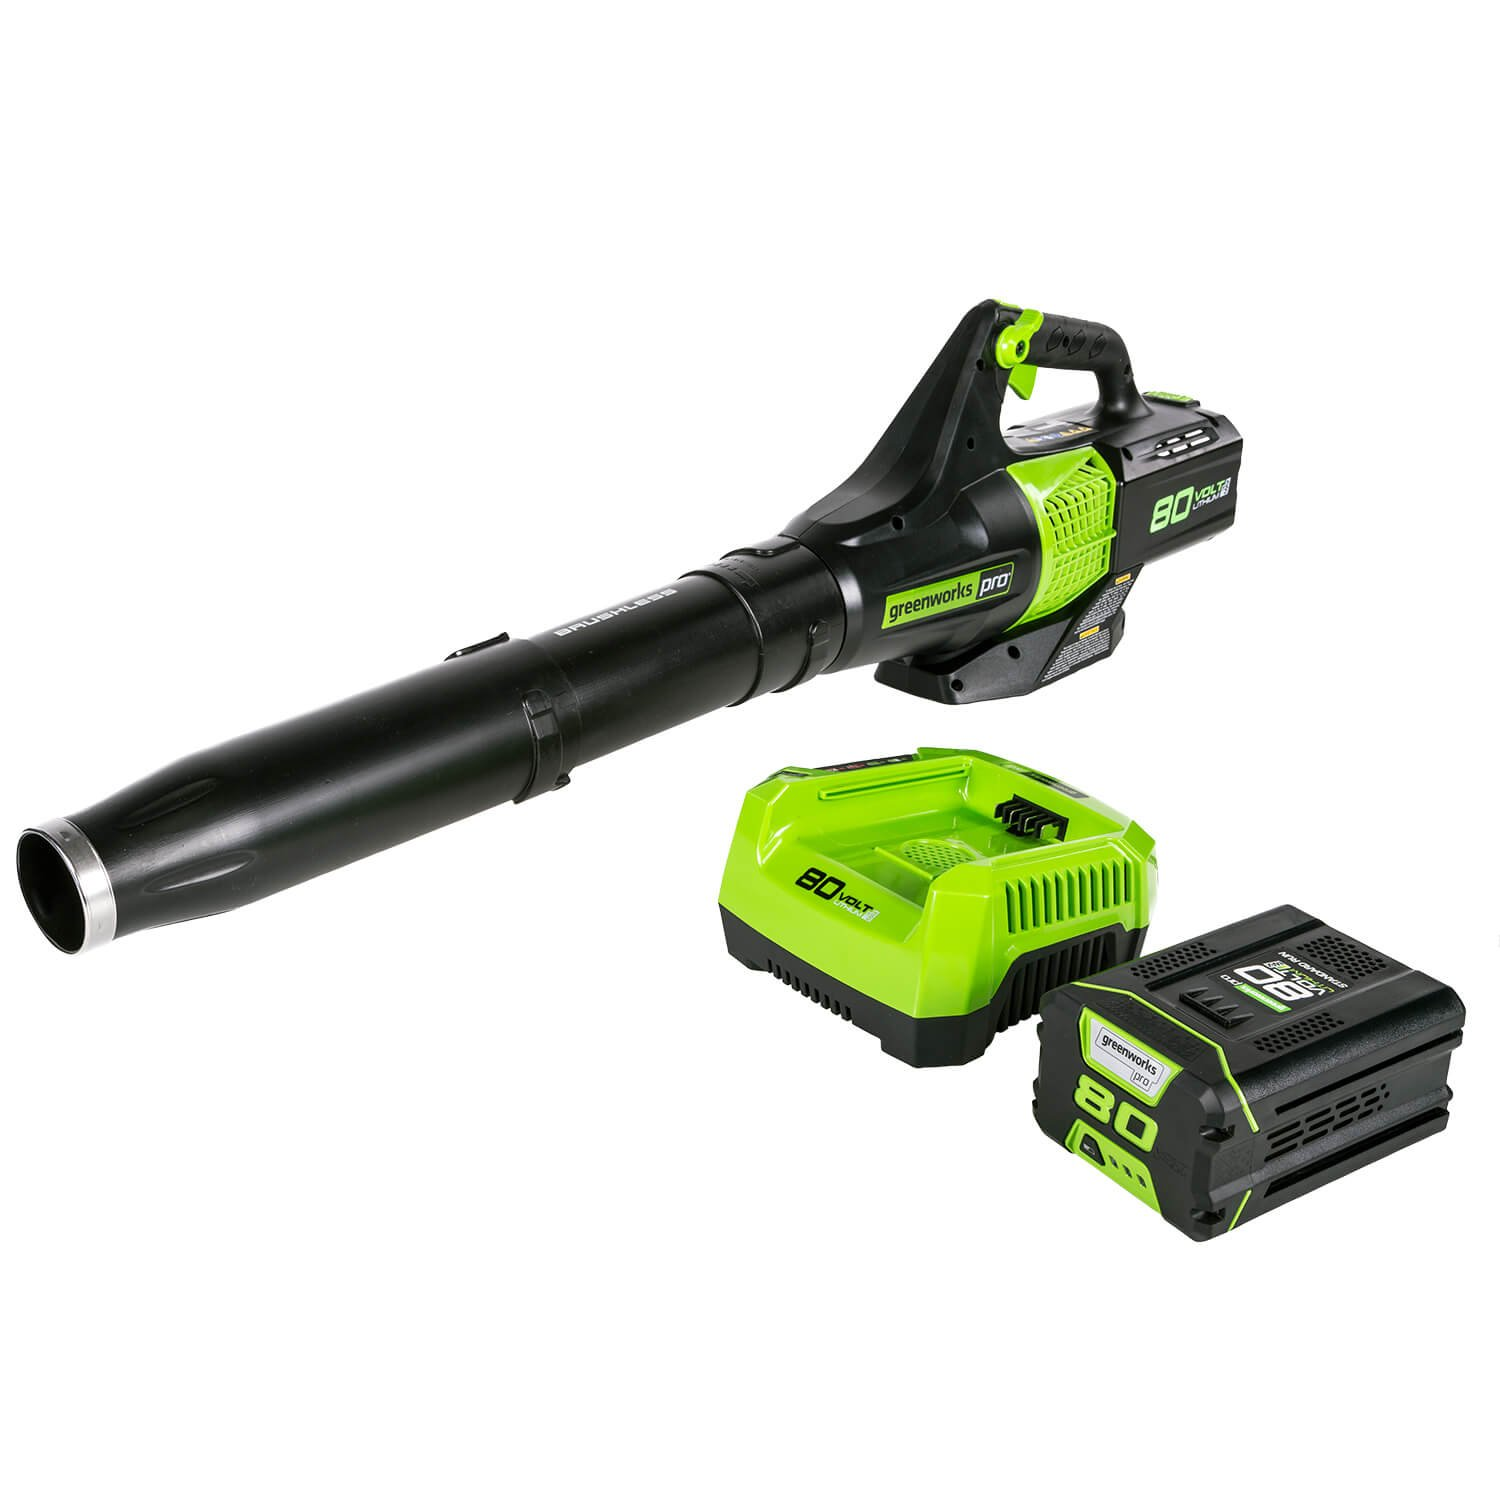 Greenworks BL80L2510 80V Jet Electric Leaf Blower by Greenworks